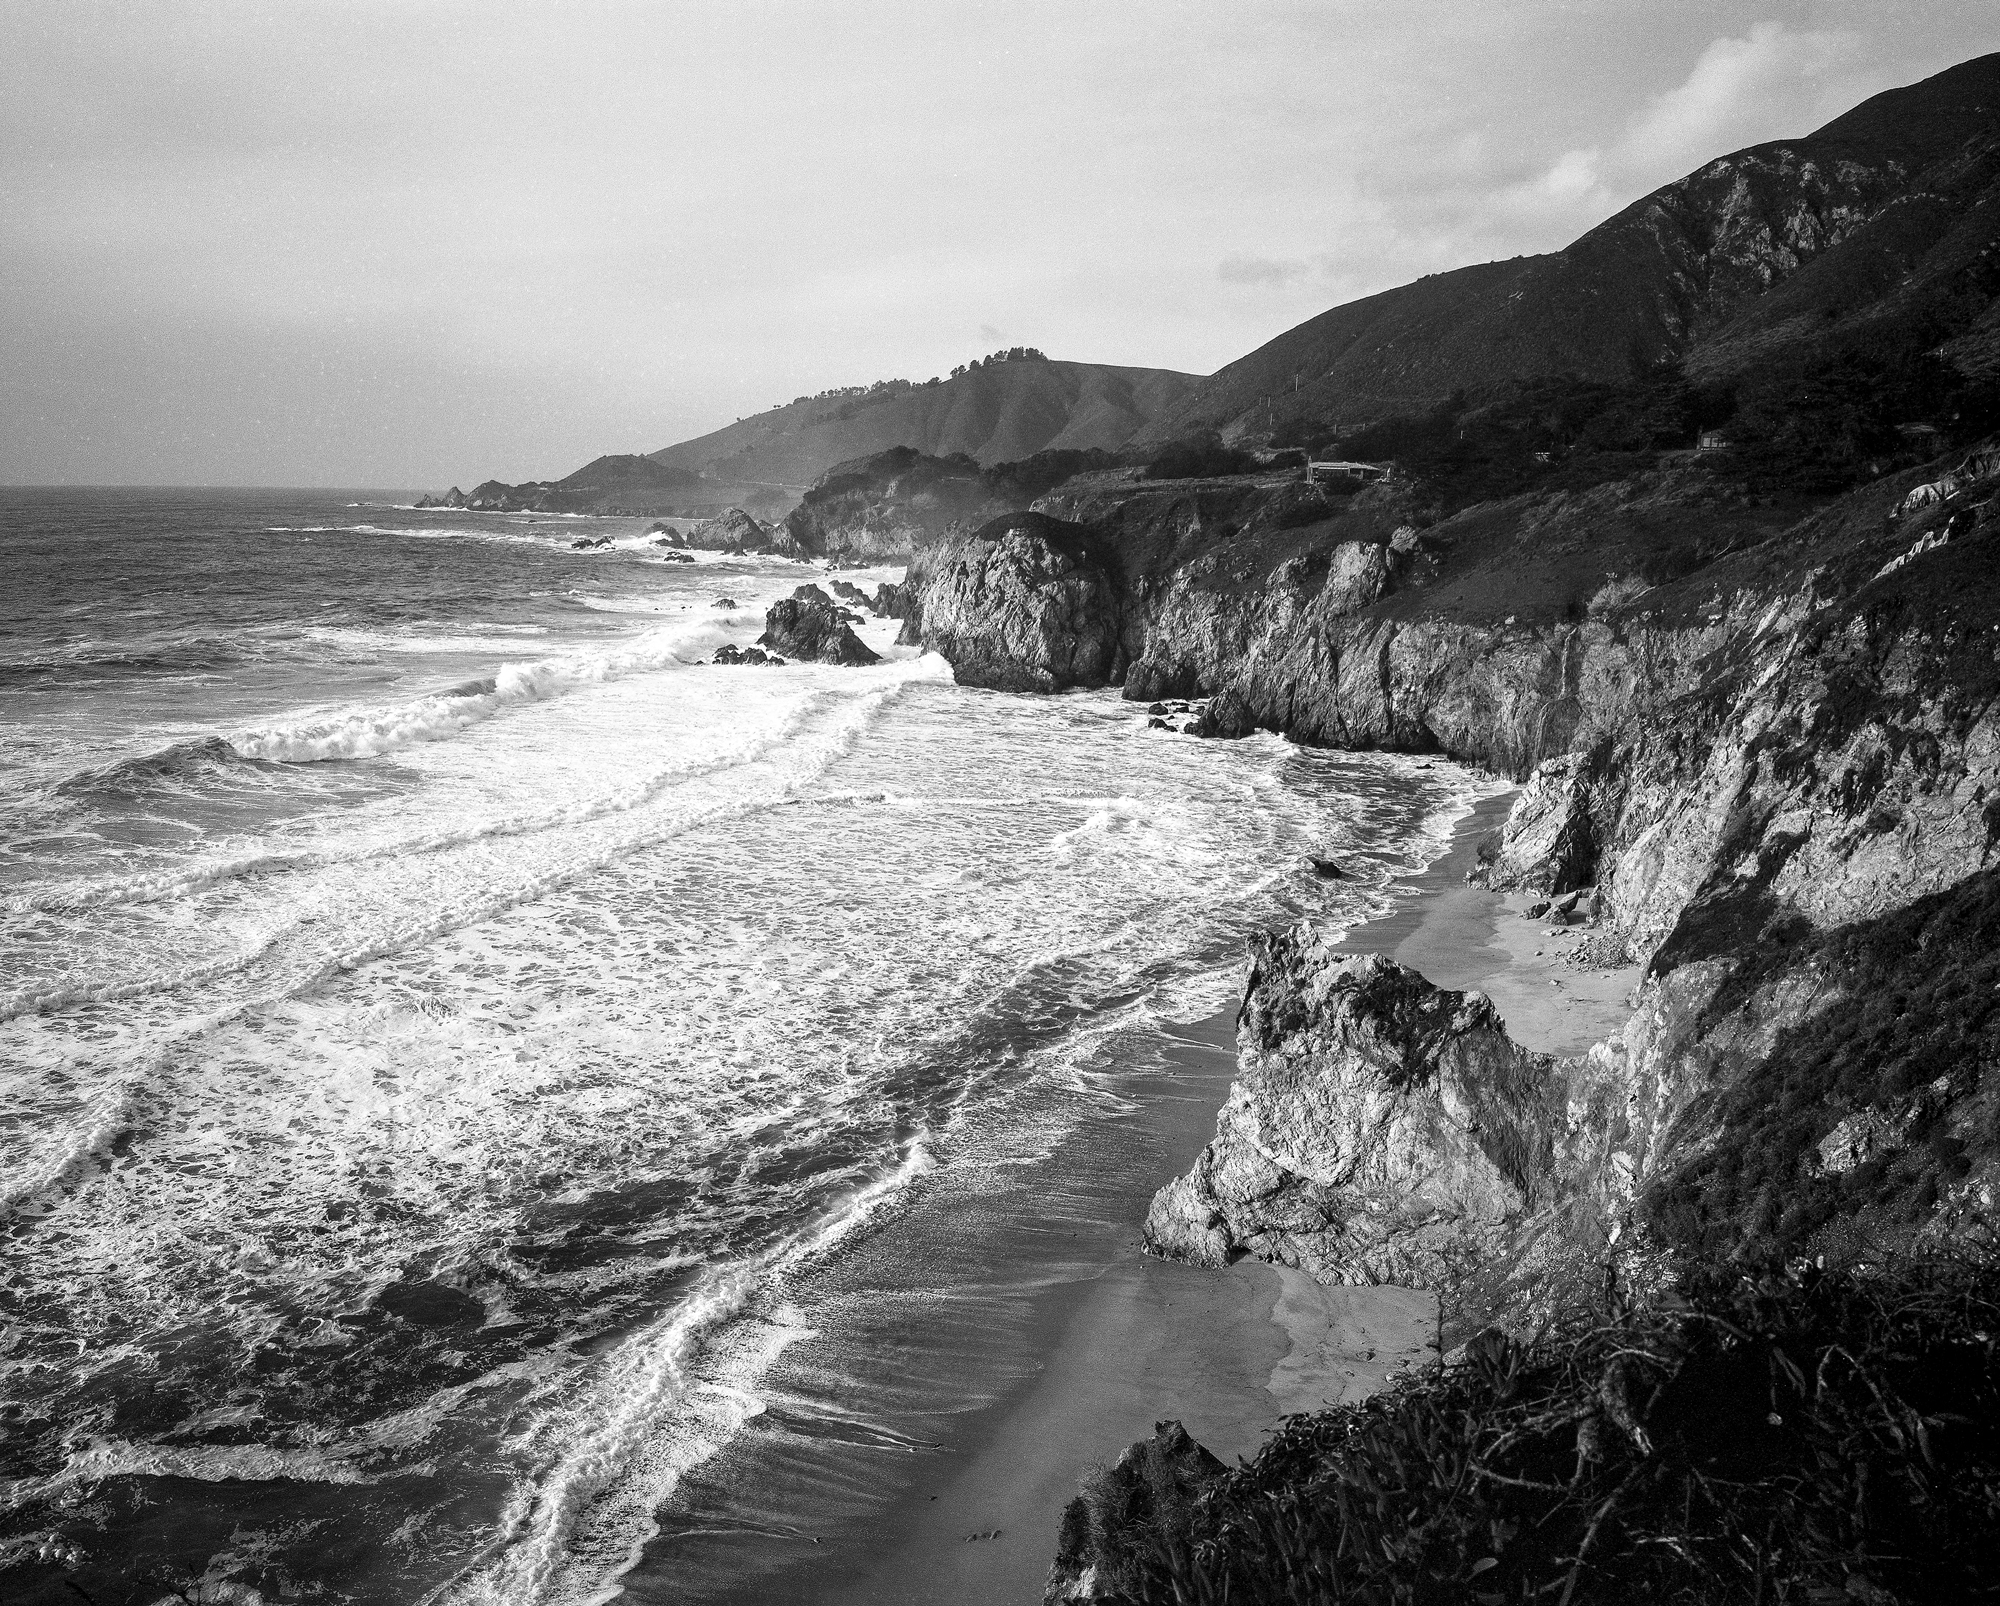 Film from driving down the California coast.